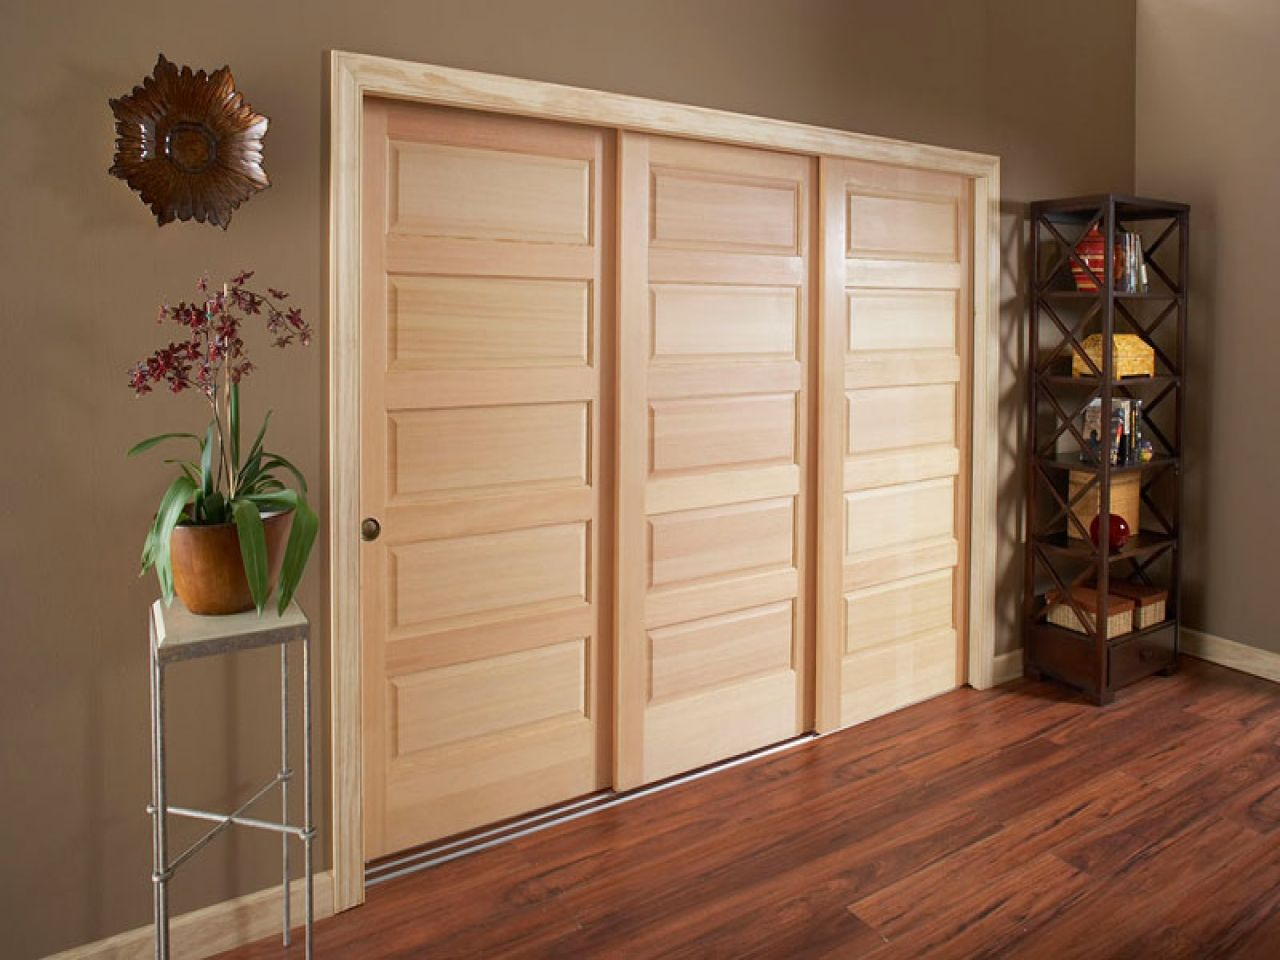 Amazing Image Result For Large Doors Closet